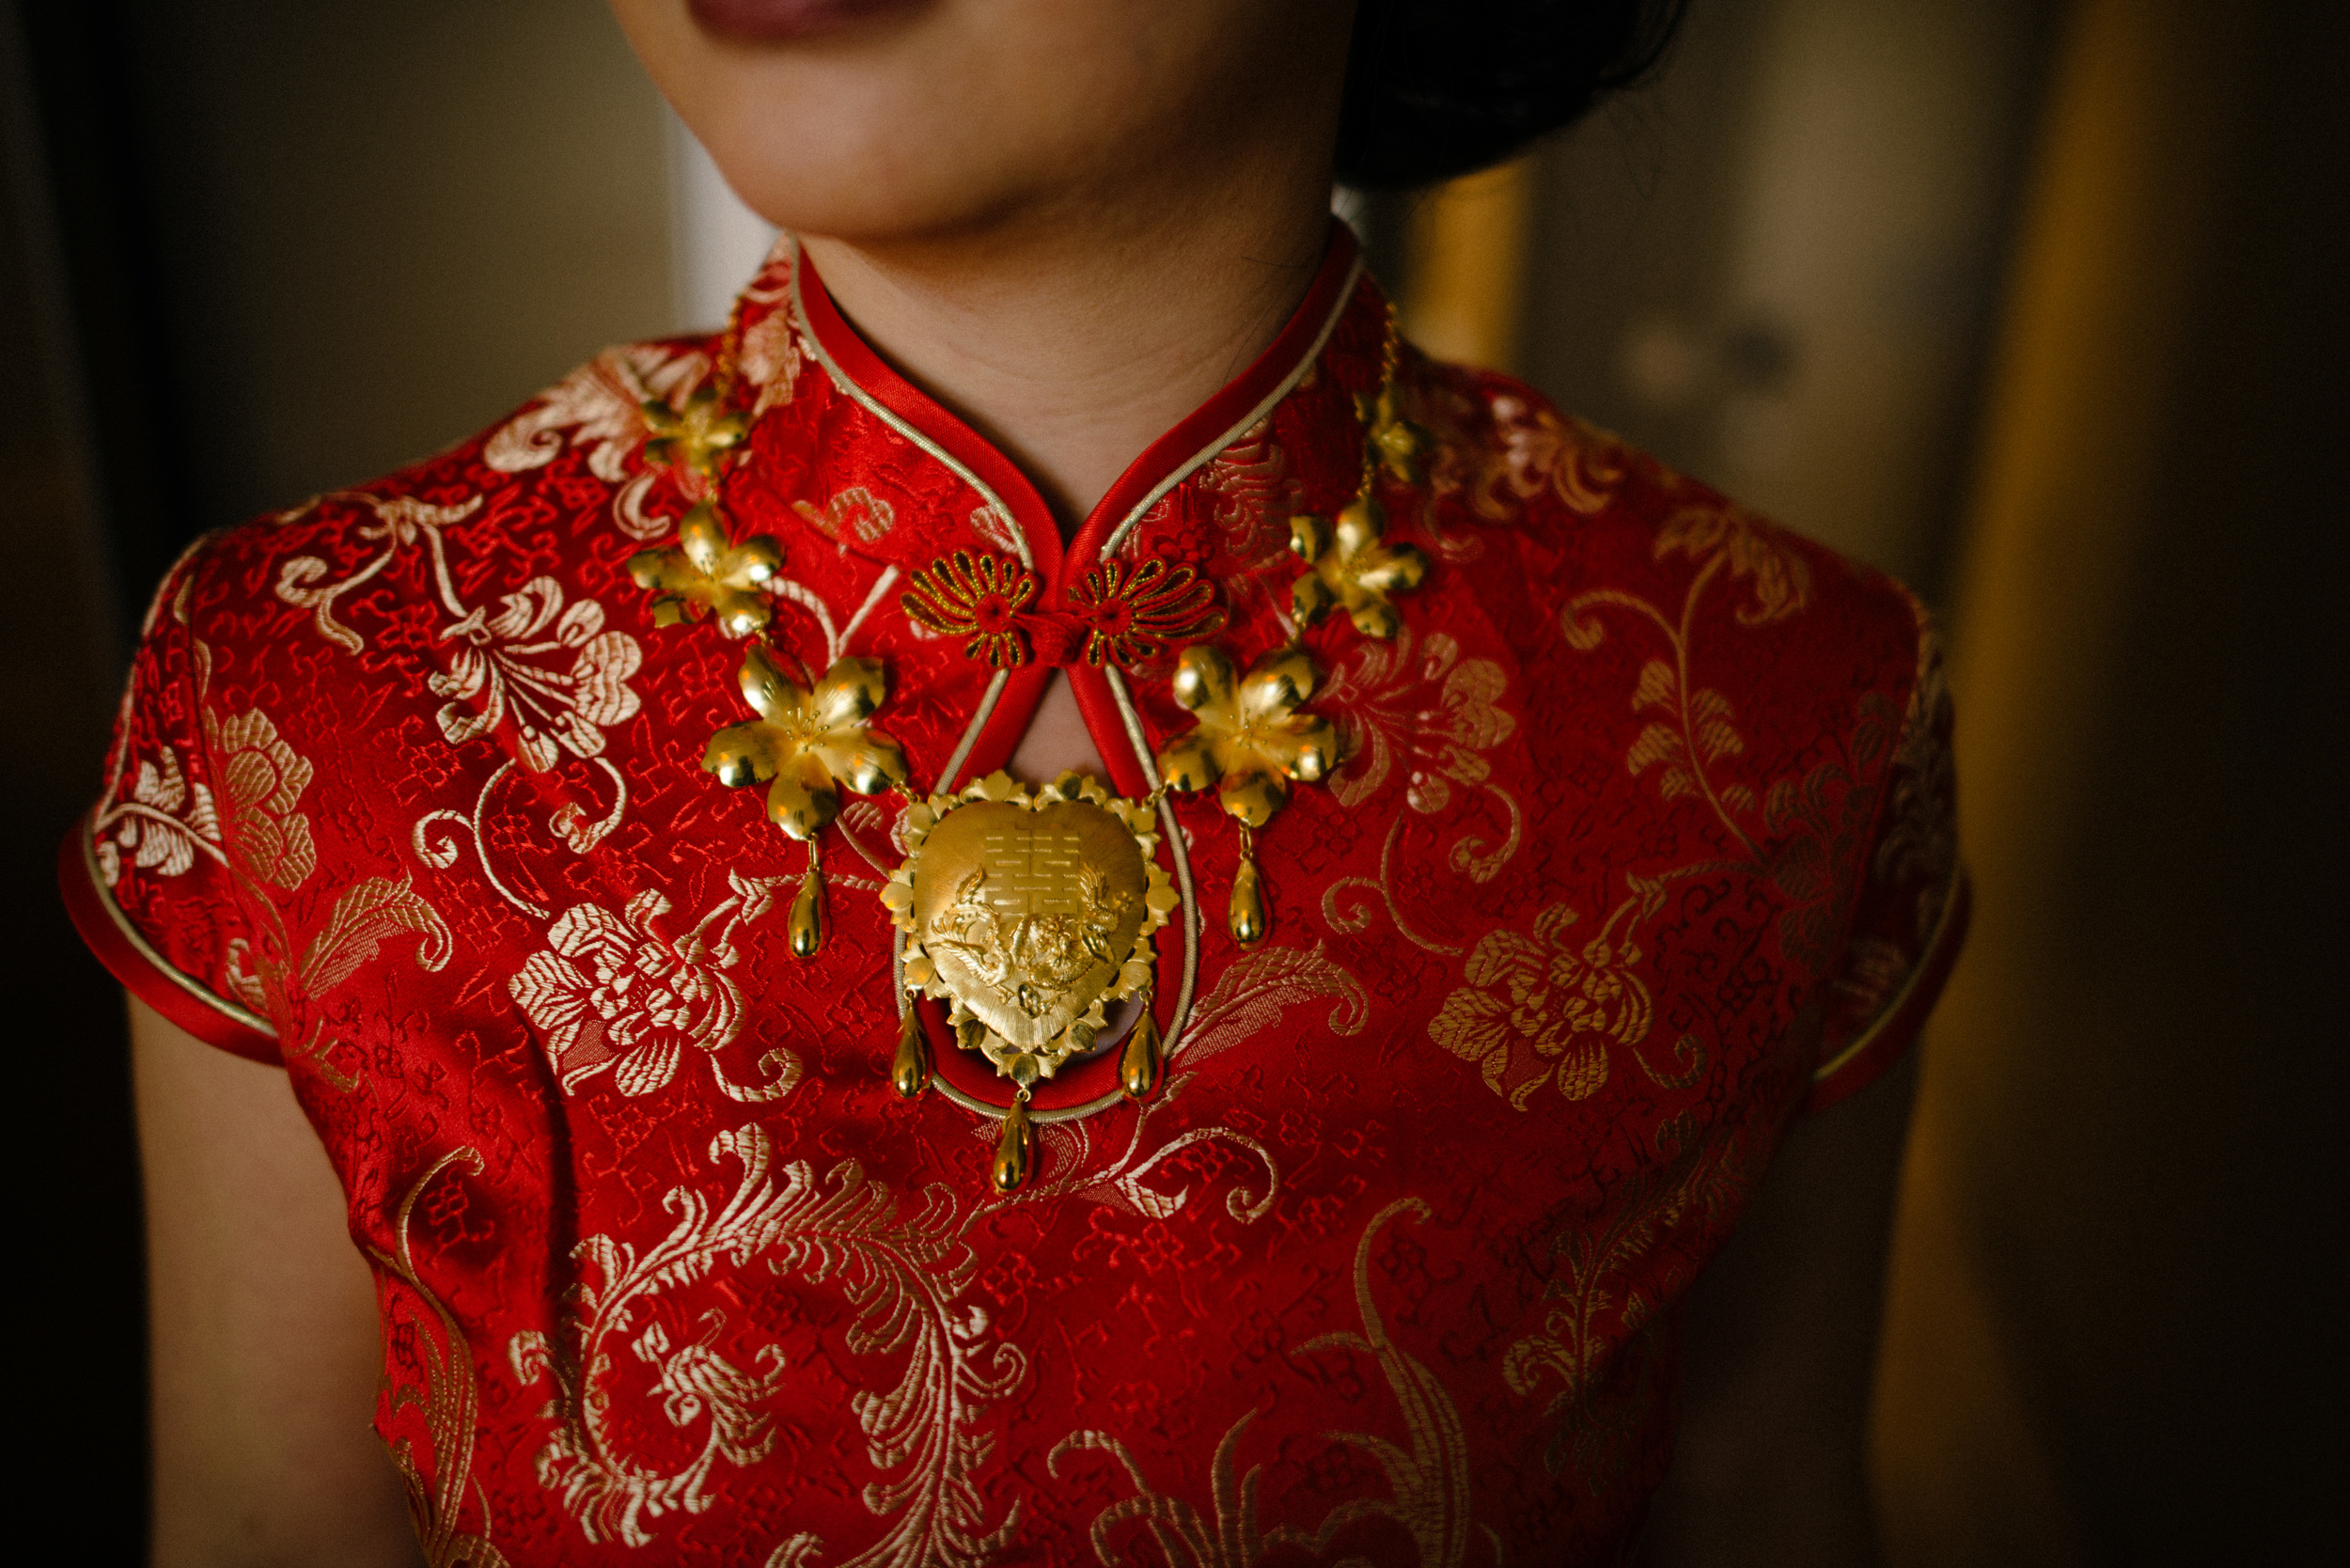 Bride portrait in Cheongsam, tradition Chinese wedding dress, photo by 3B Photography